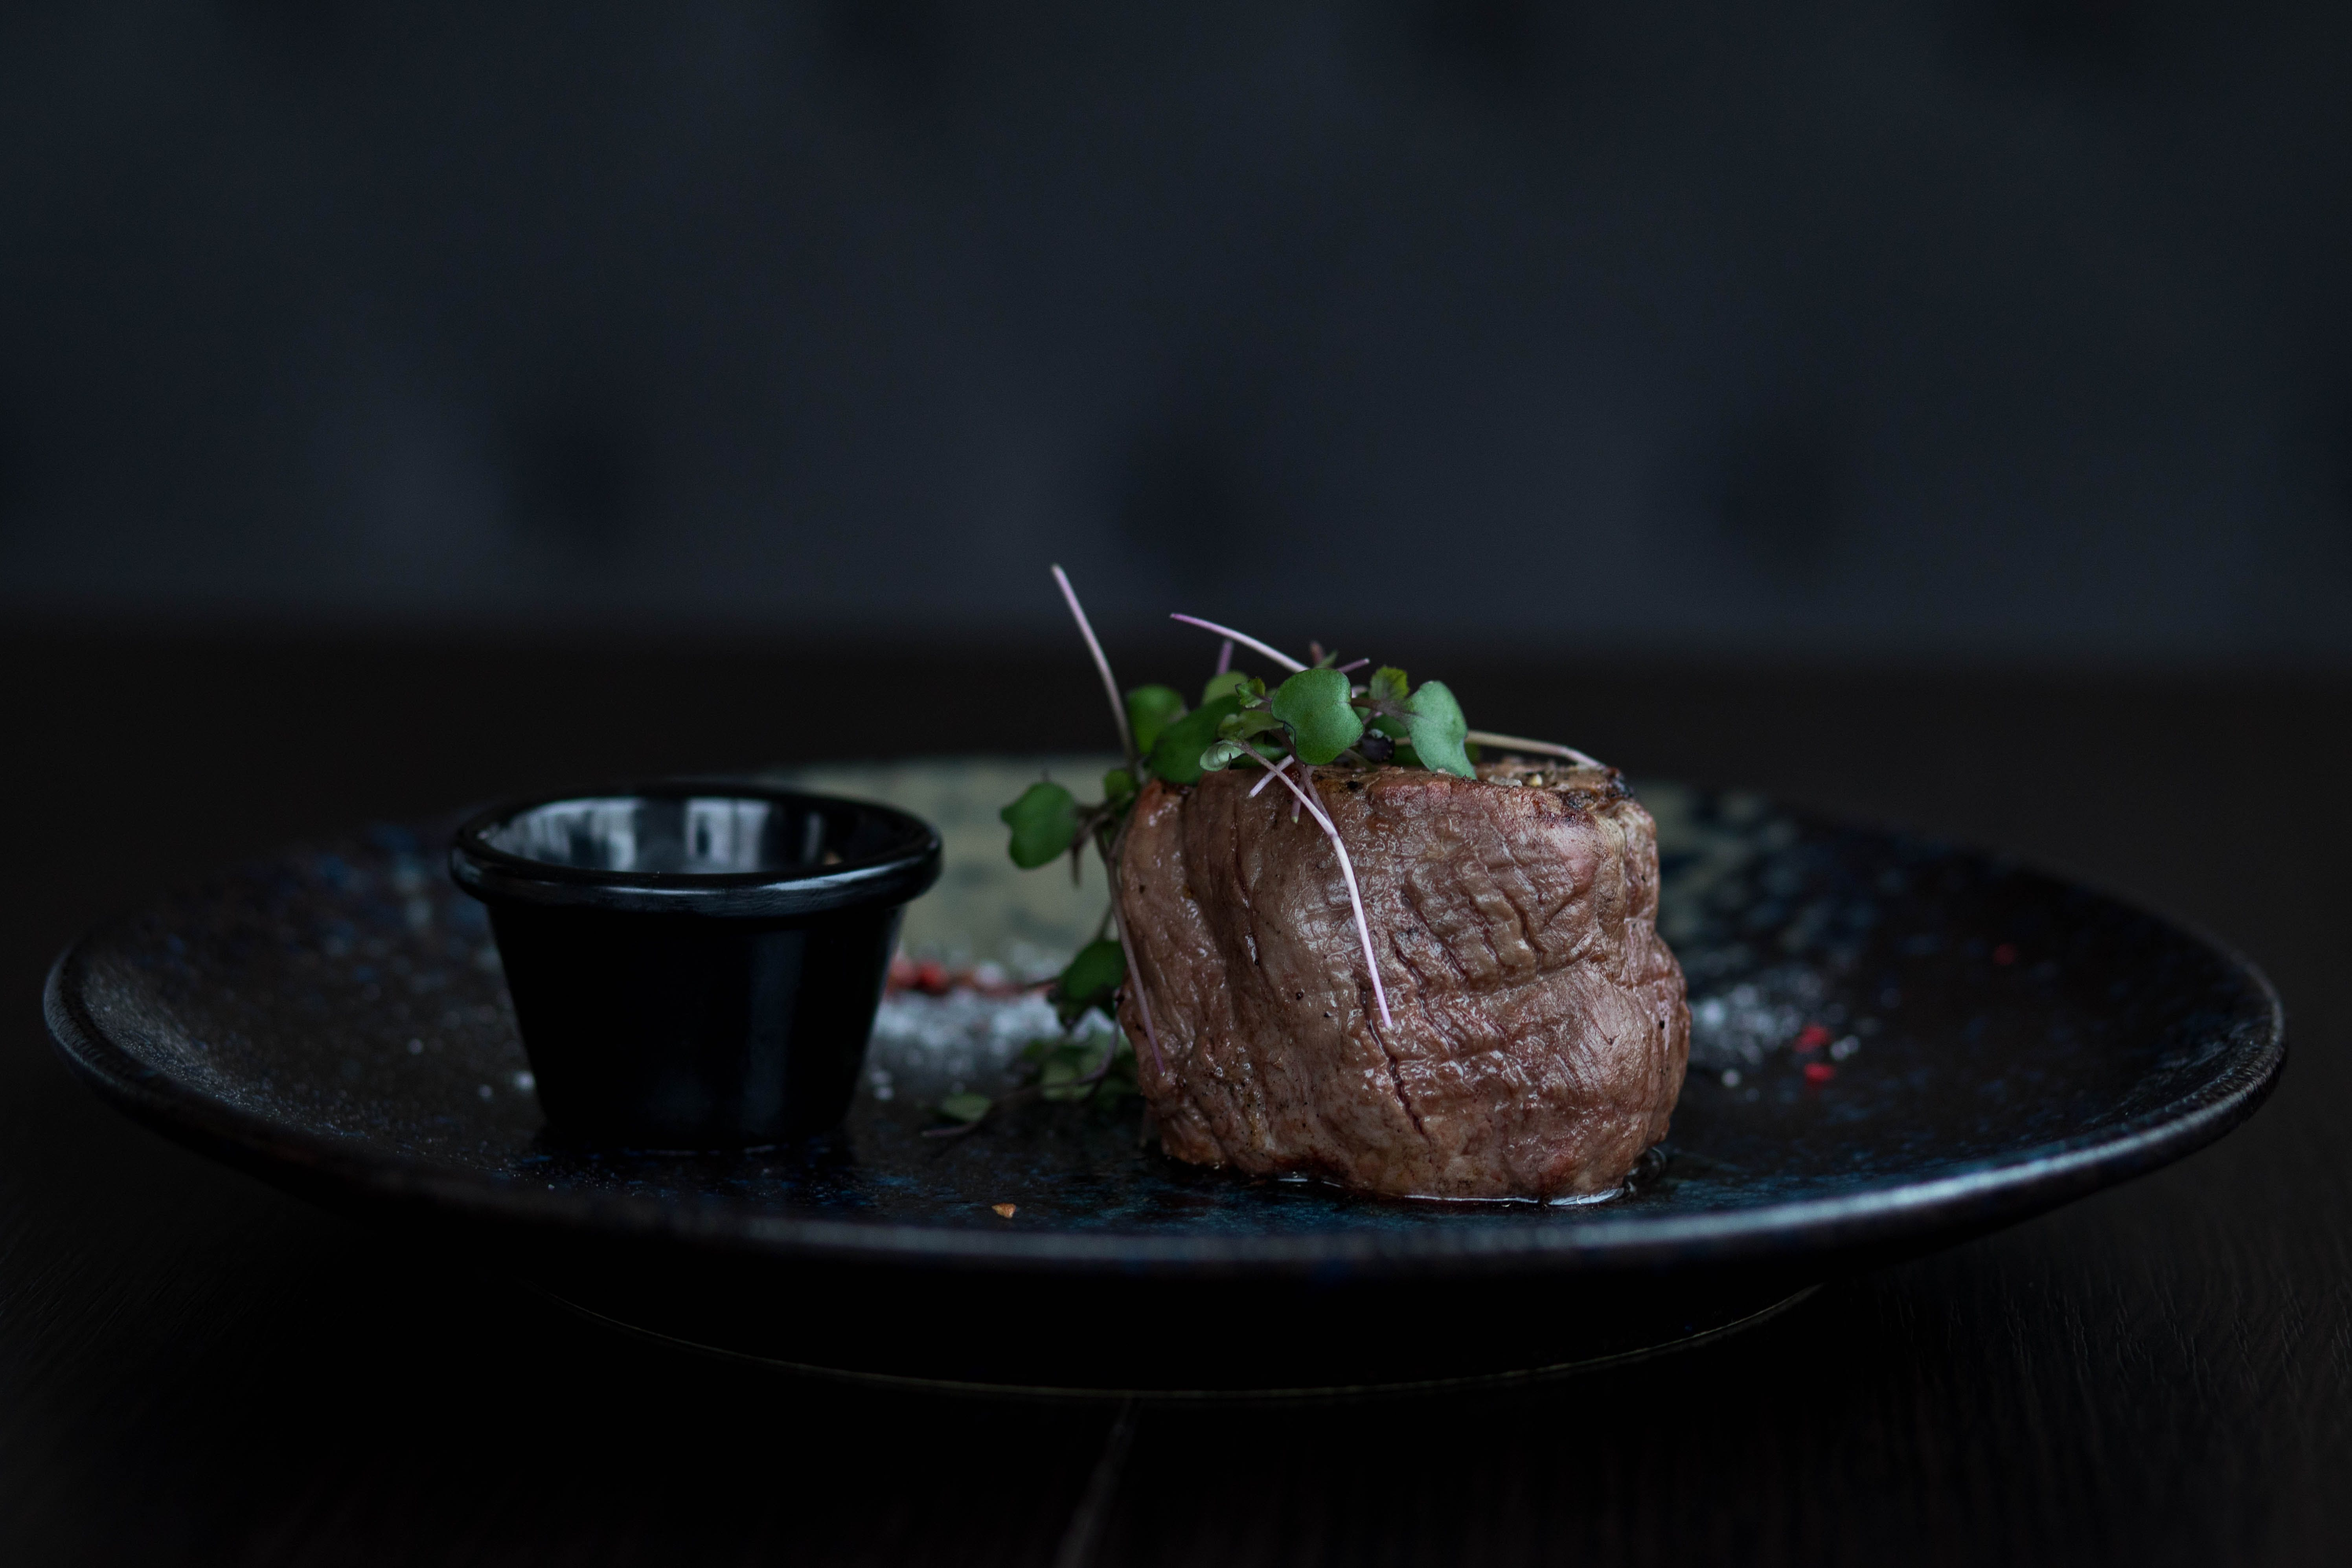 Plate of Beef with Herbs